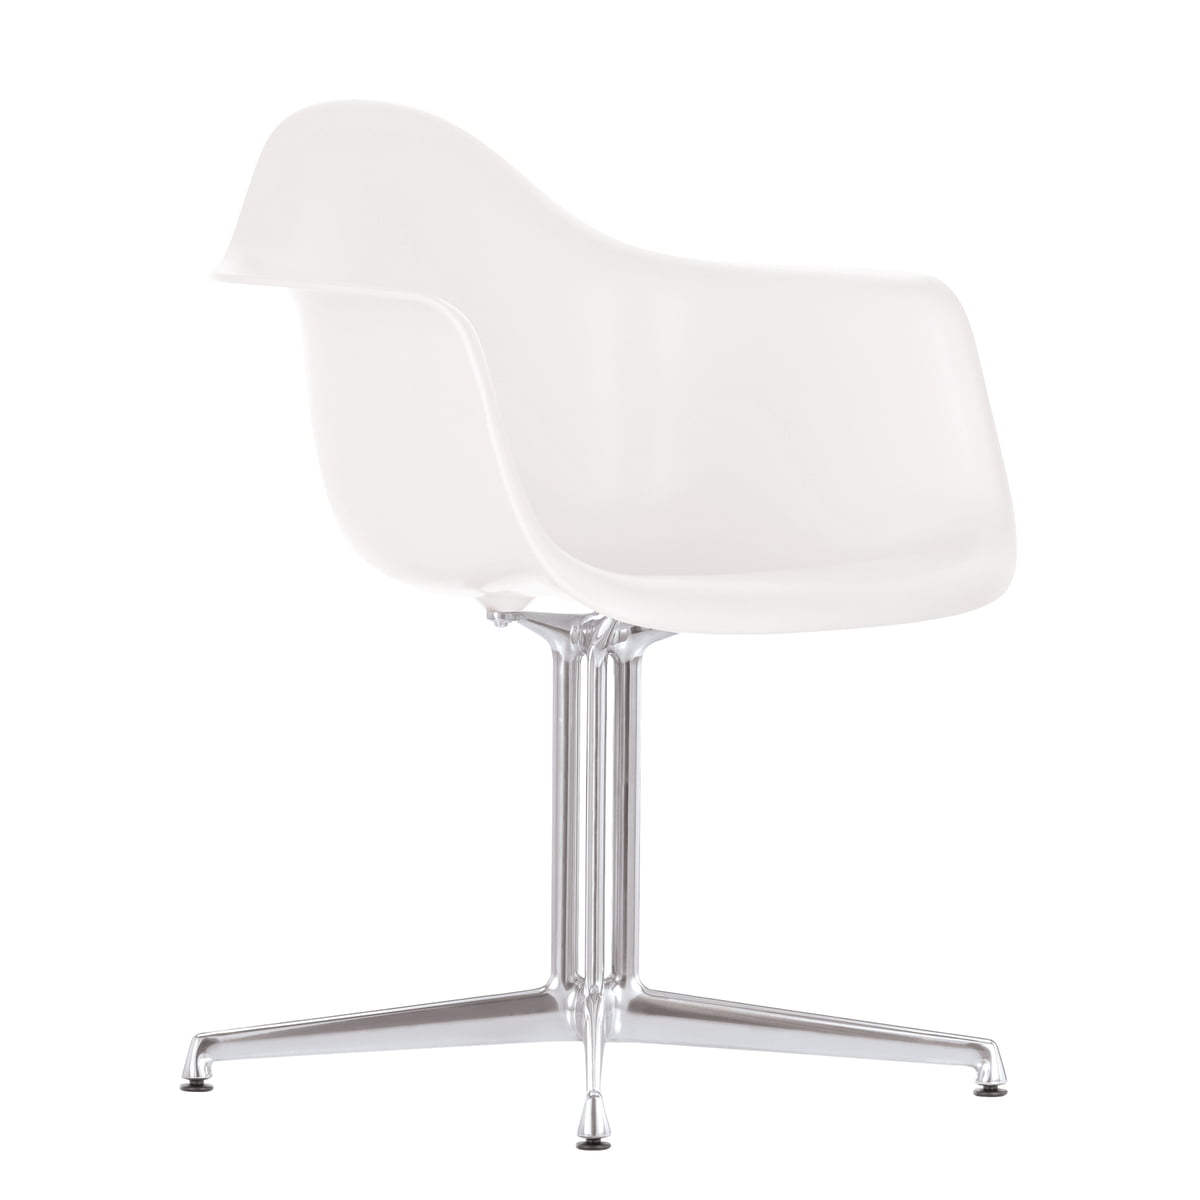 Eames plastic armchair dal by vitra connox for Vitra eames plastic armchair replica